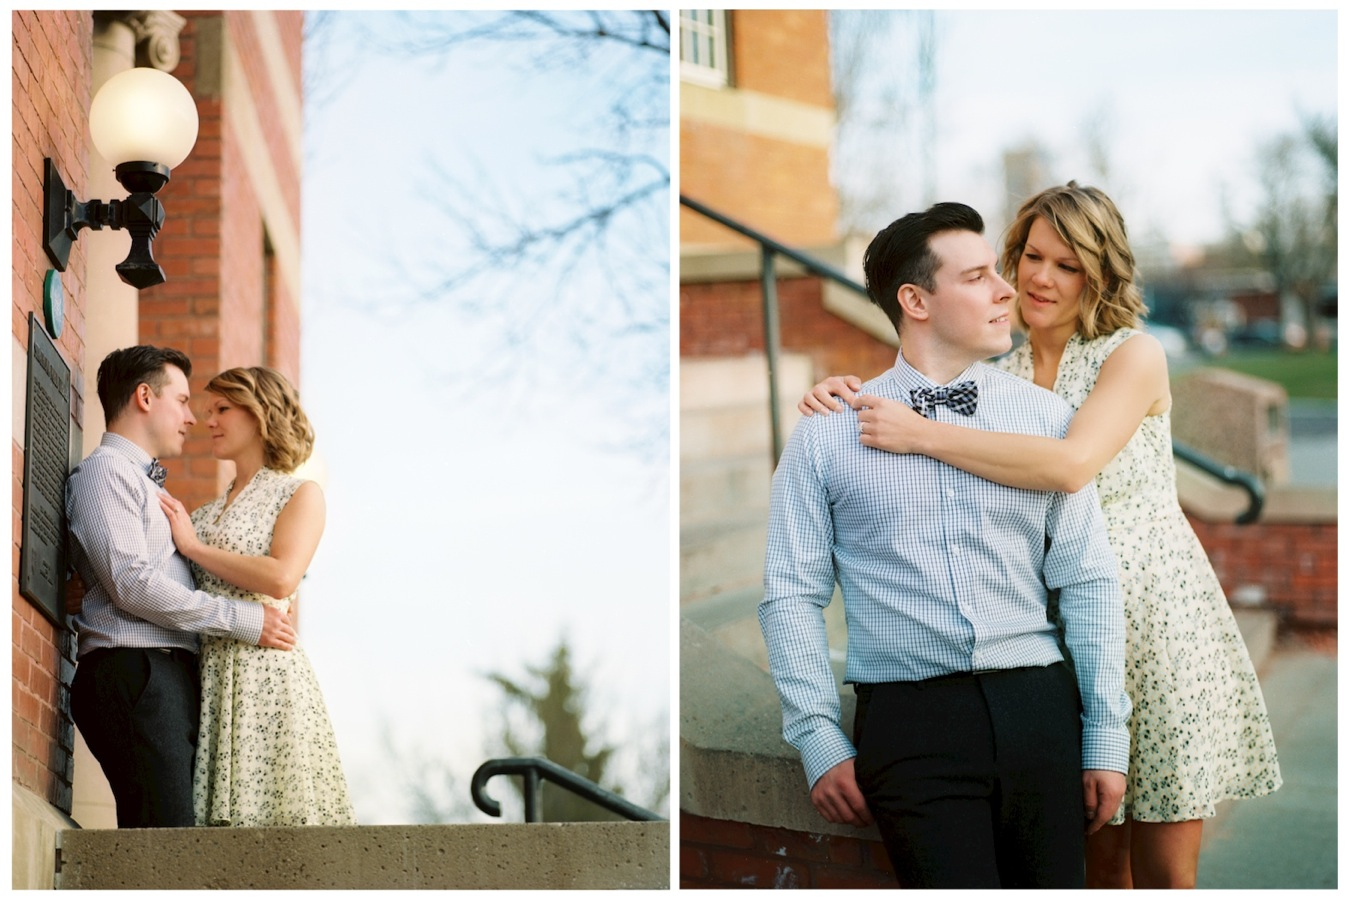 Whyte-Ave-Engagement-Session-05.jpeg